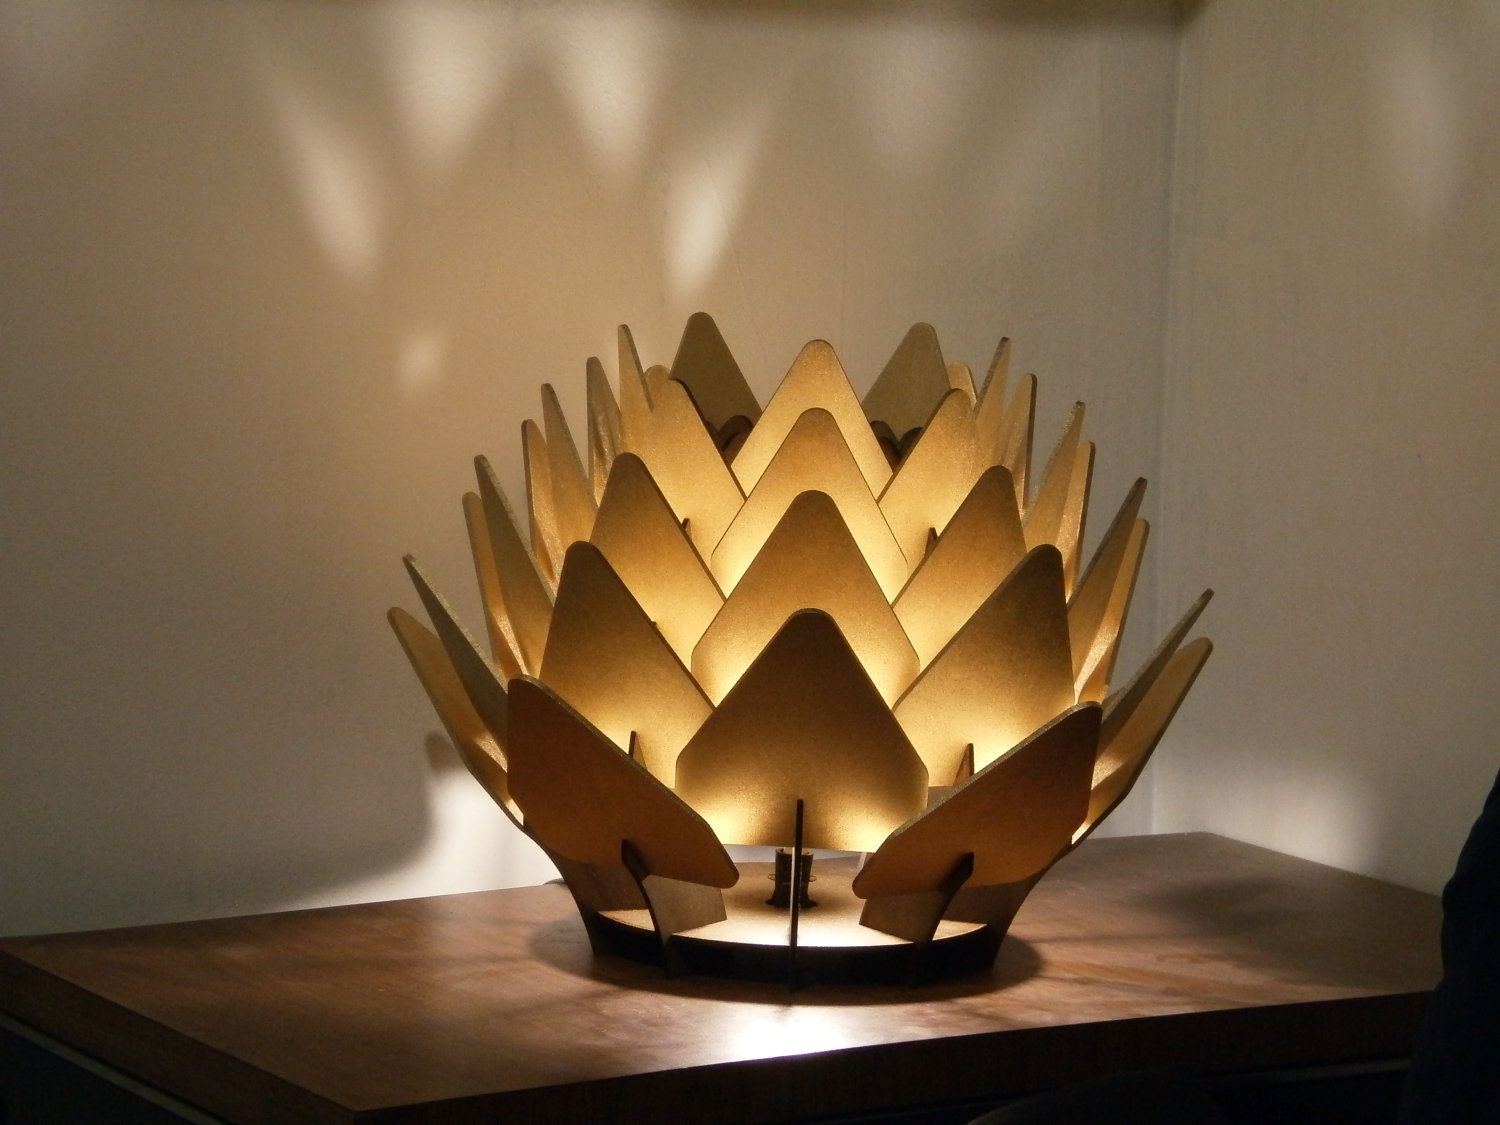 cynara table lamp geometric wood sculpture accent by sectorxero via etsy totems. Black Bedroom Furniture Sets. Home Design Ideas